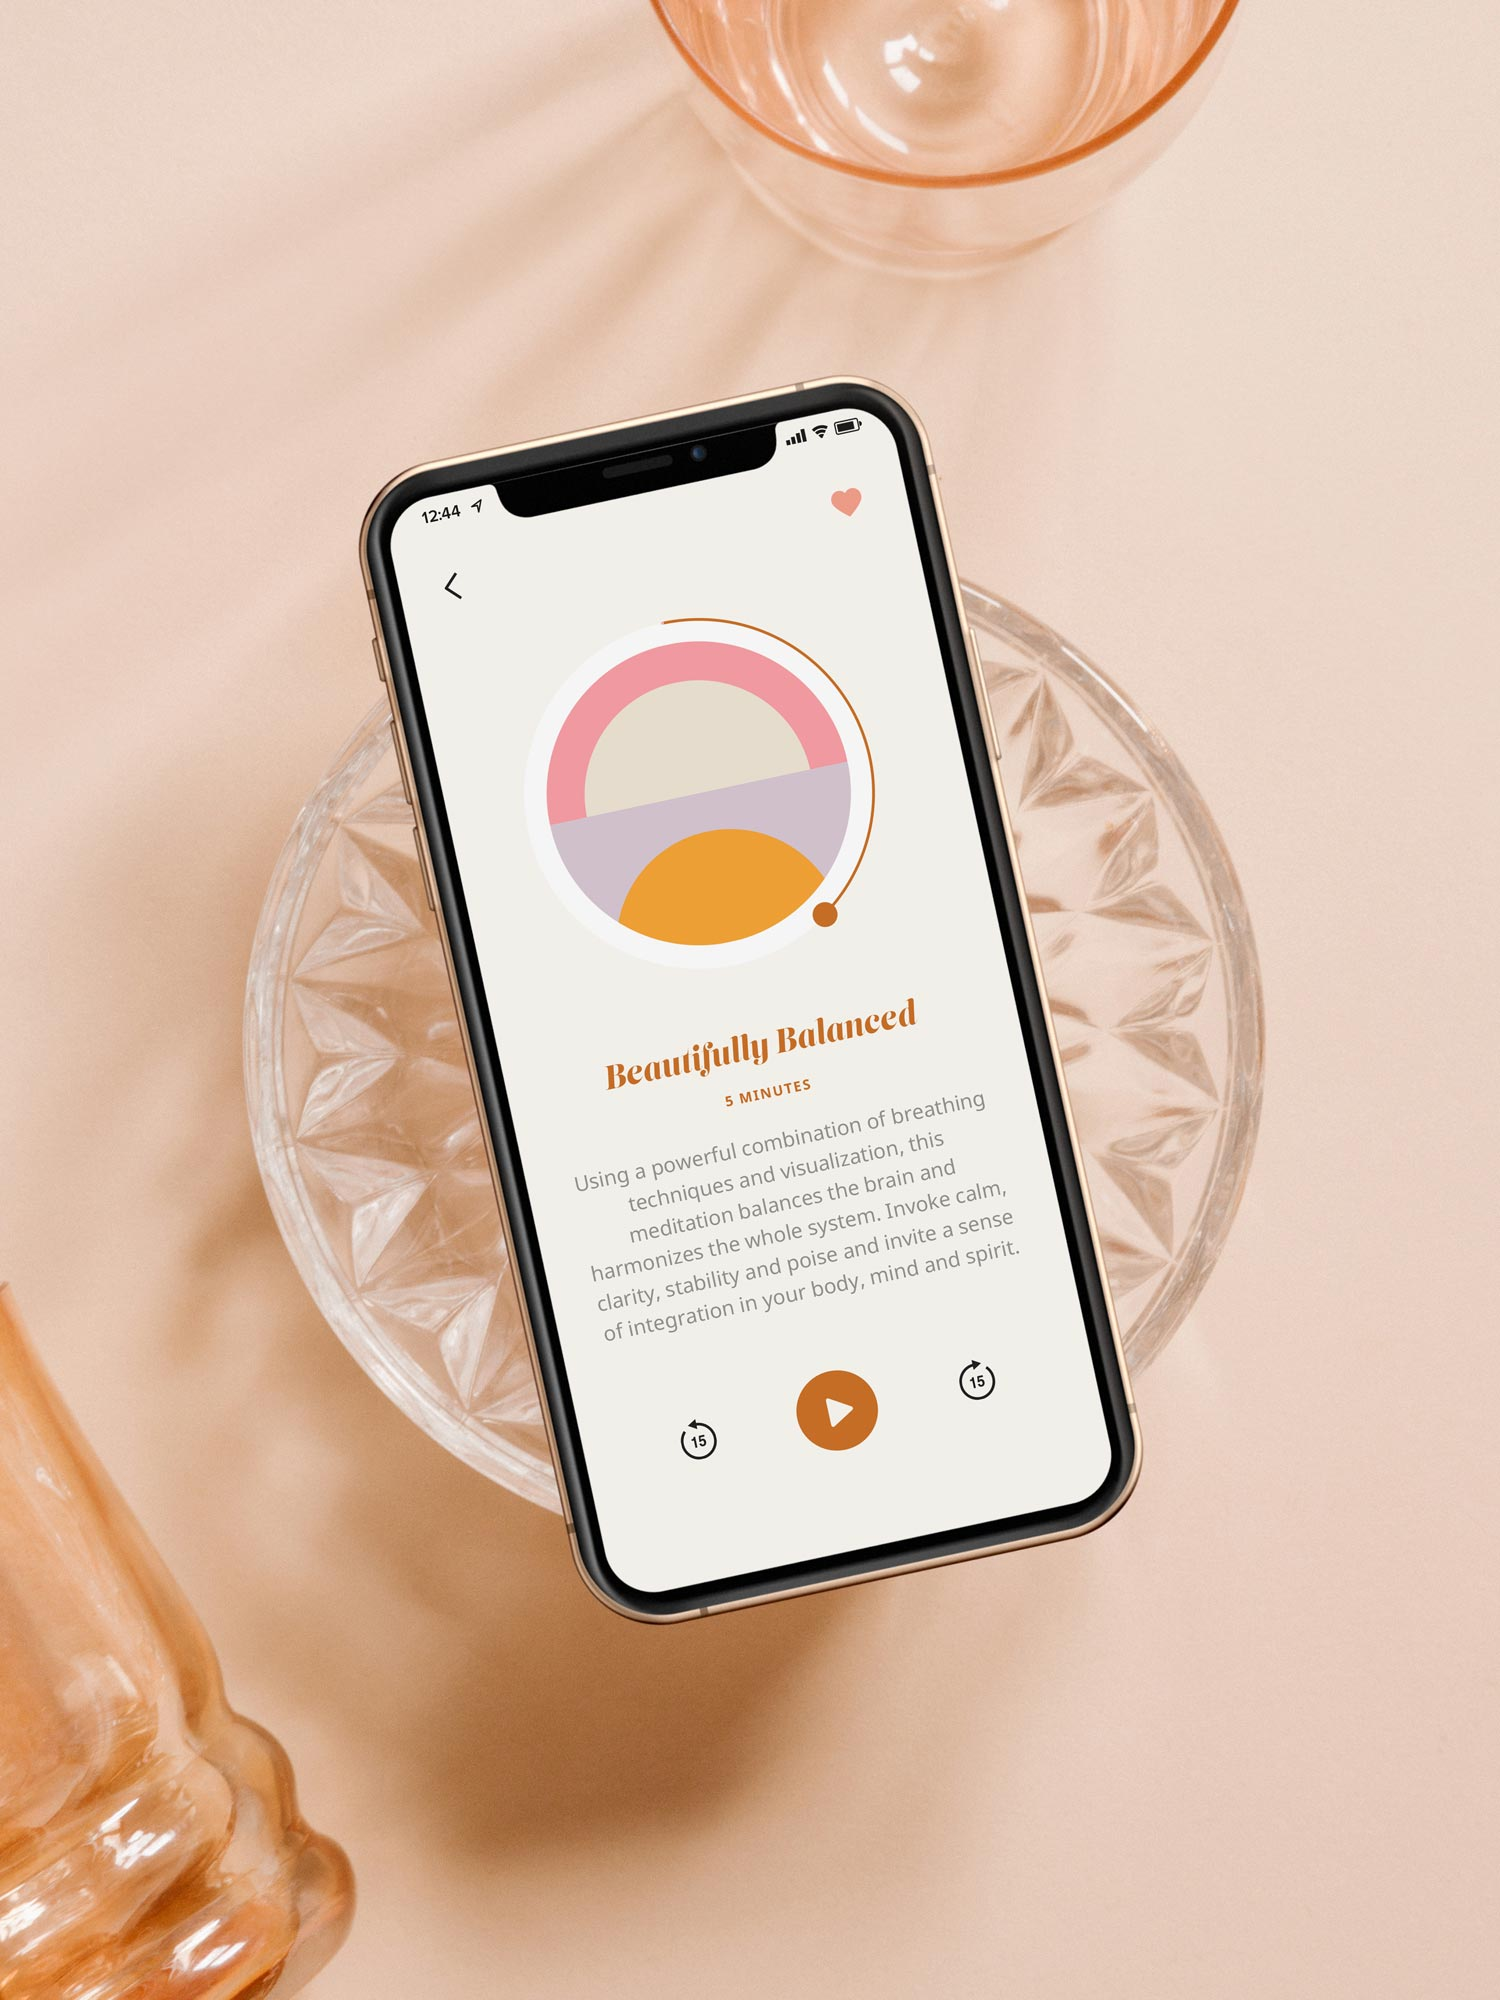 The Heavily Meditated app play screen, displayed on an iphone